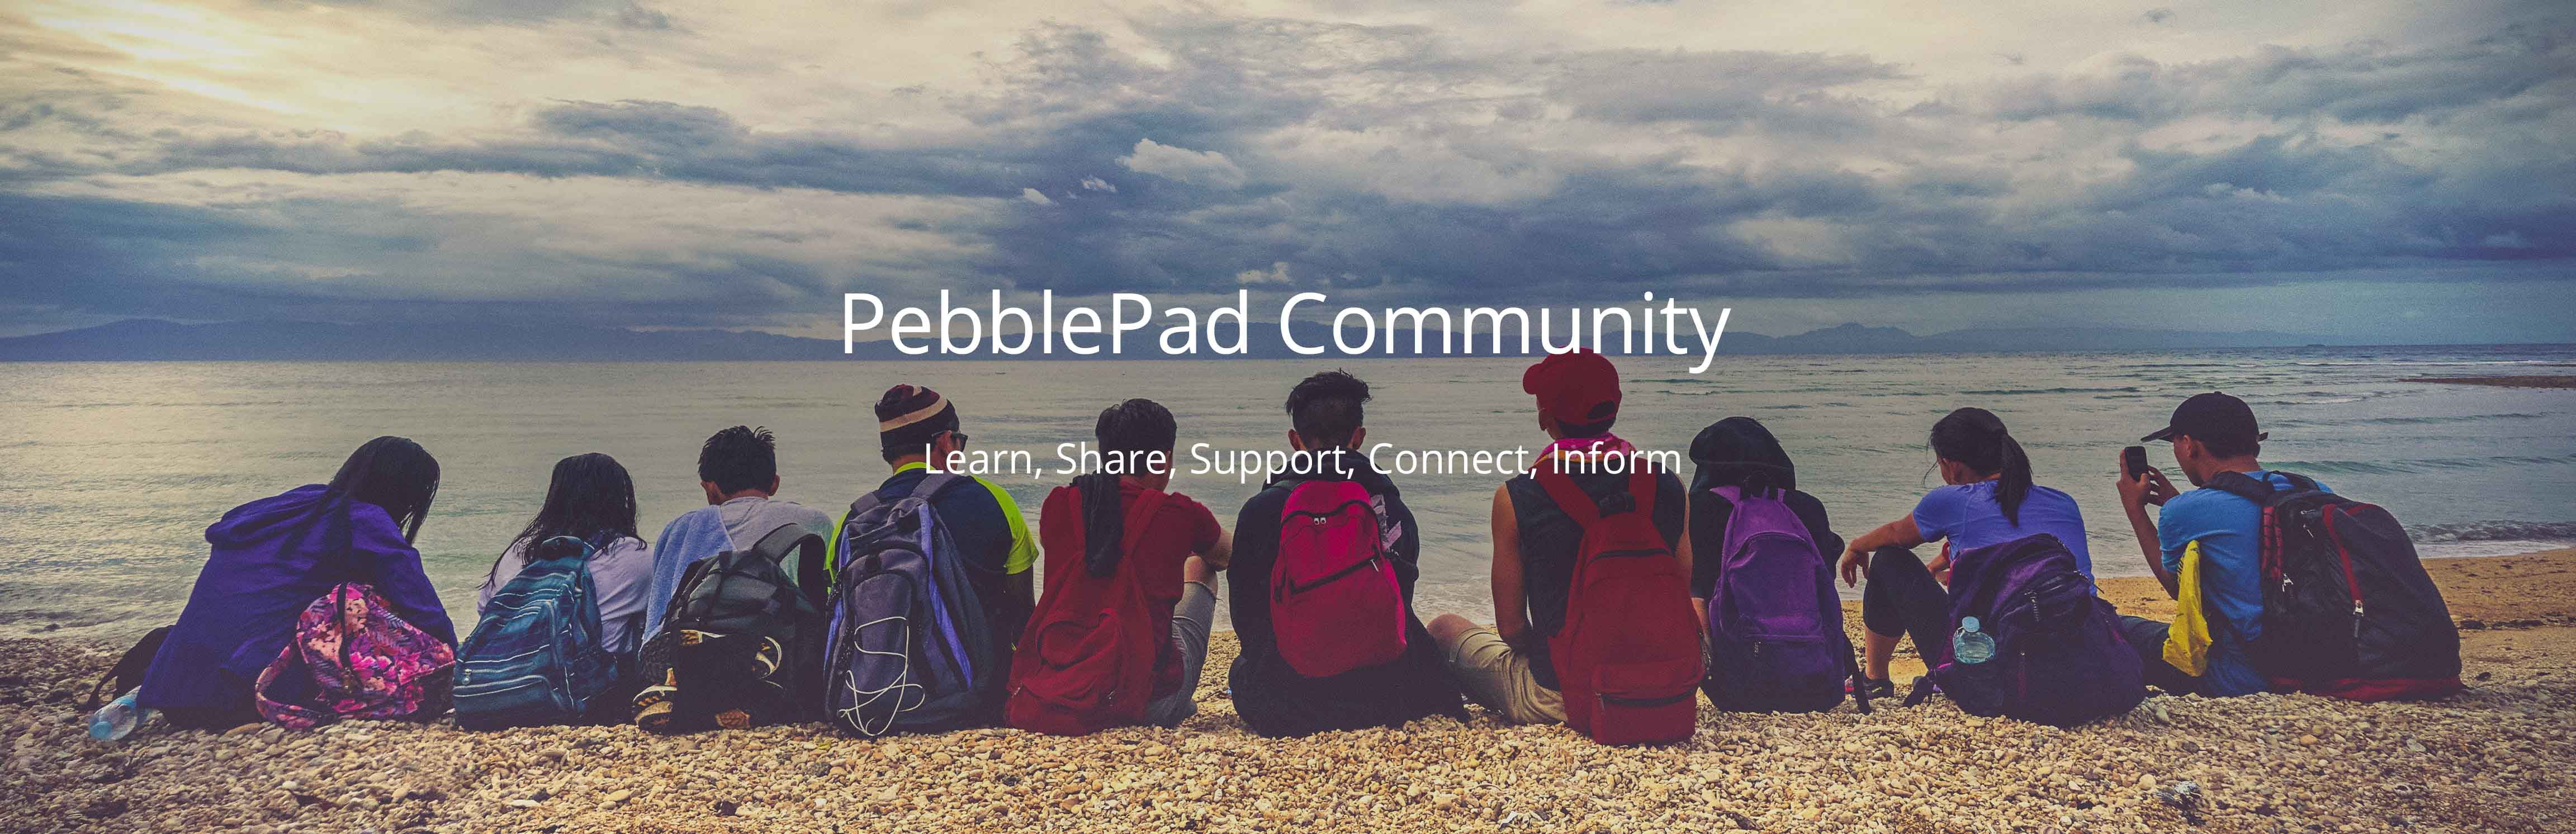 PebblePad Community - Learn, Share, Support, Connect, Inform